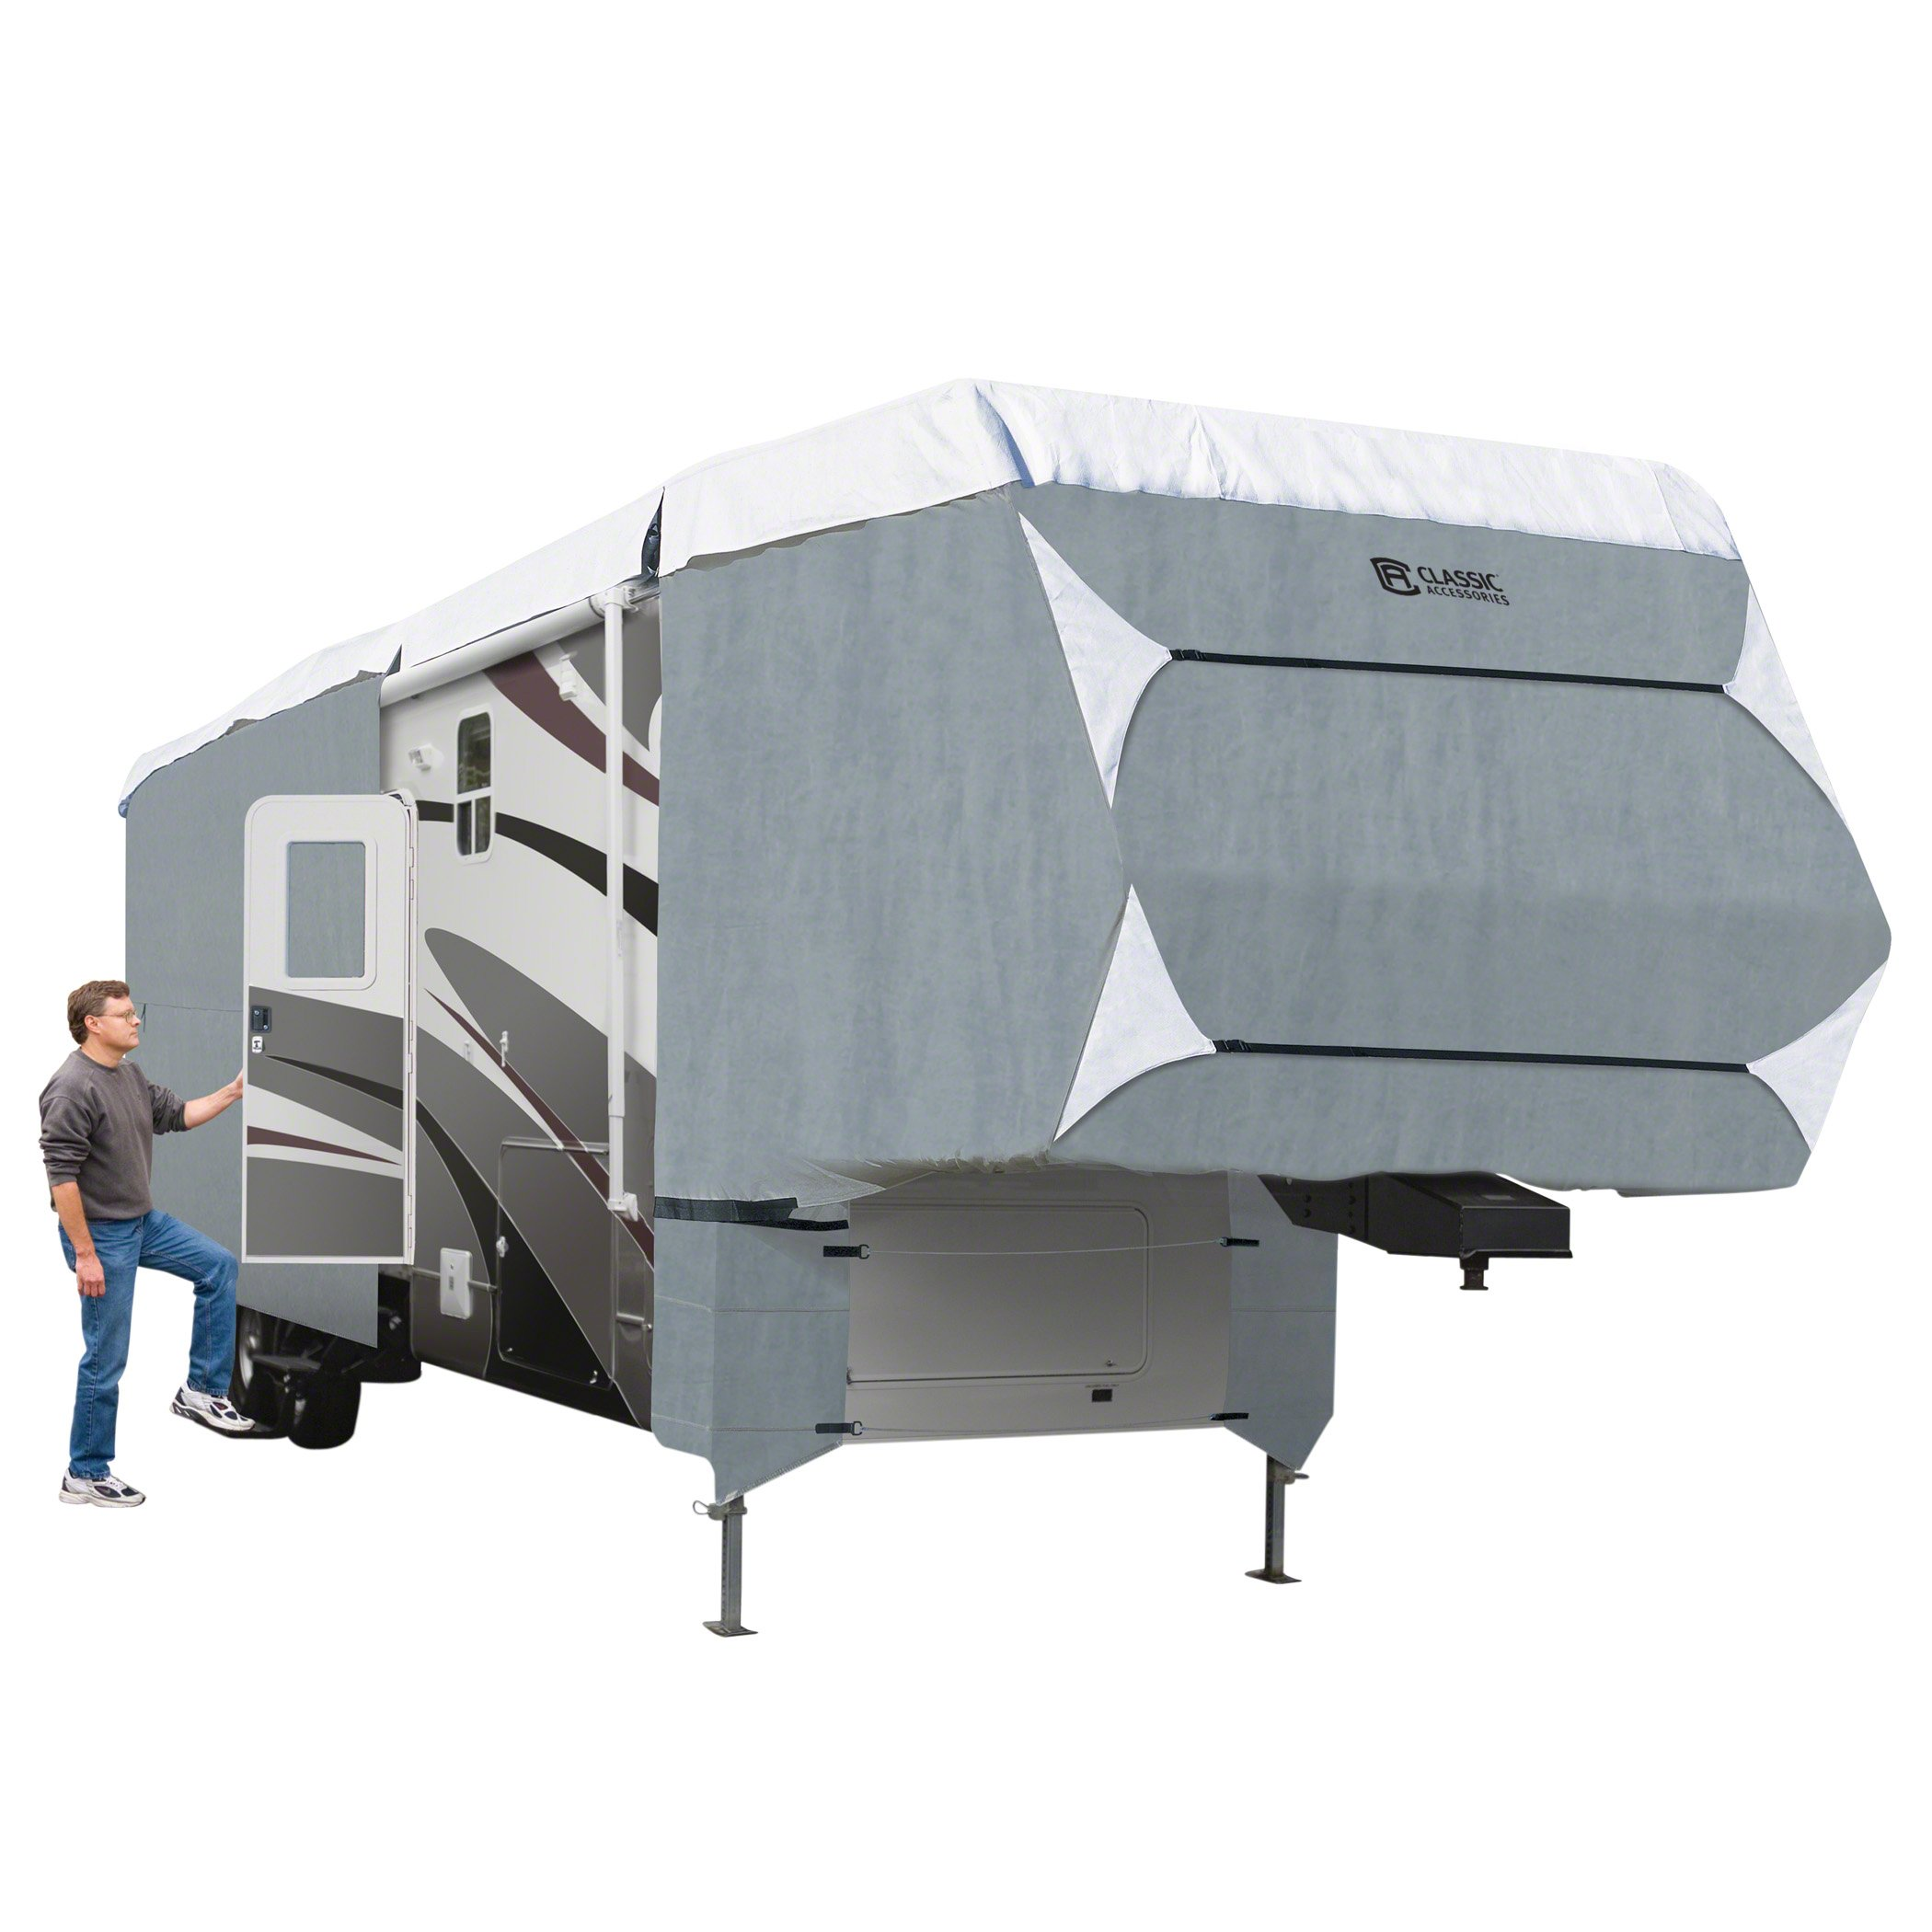 Classic Accessories OverDrive PolyPro 3 Deluxe Cover for 37' to 41' Extra Tall 5th Wheel Trailers by Classic Accessories